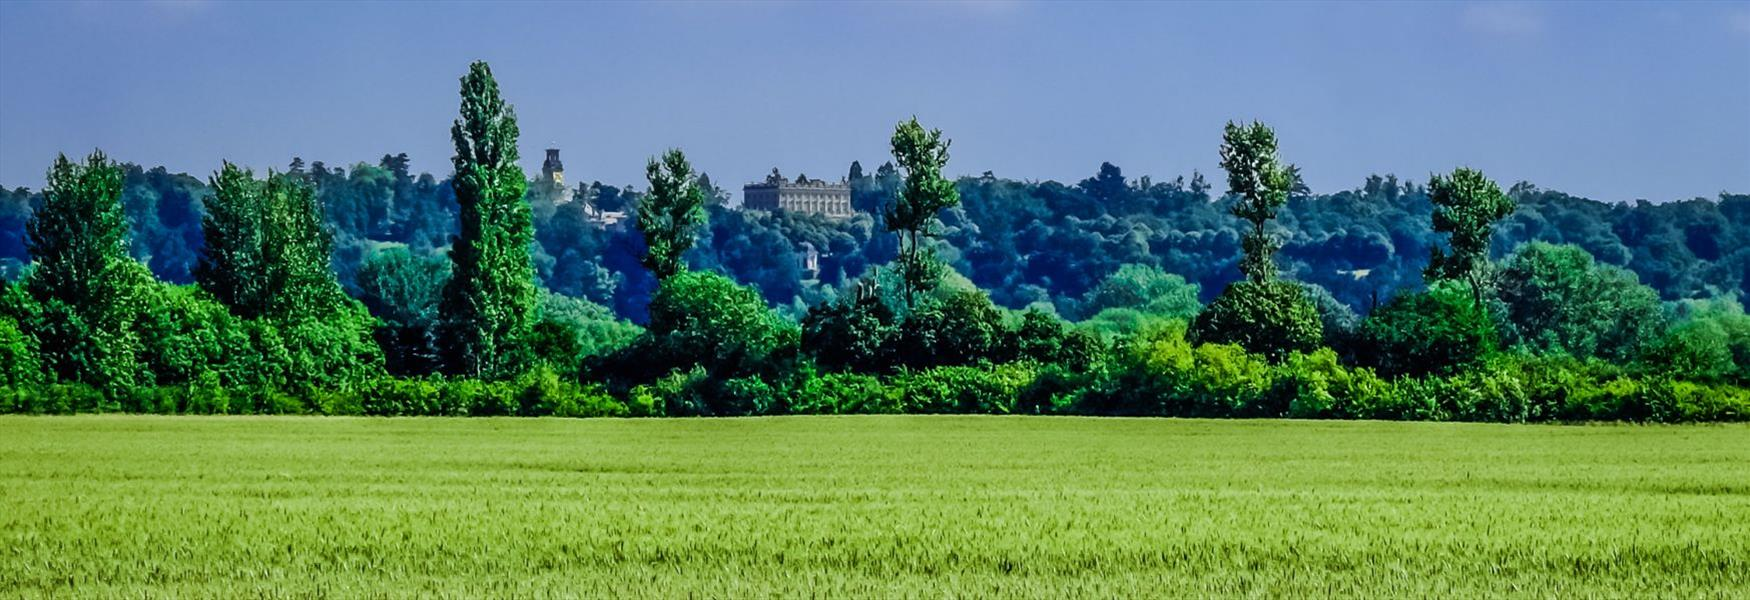 Views of Cliveden from Maidenhead